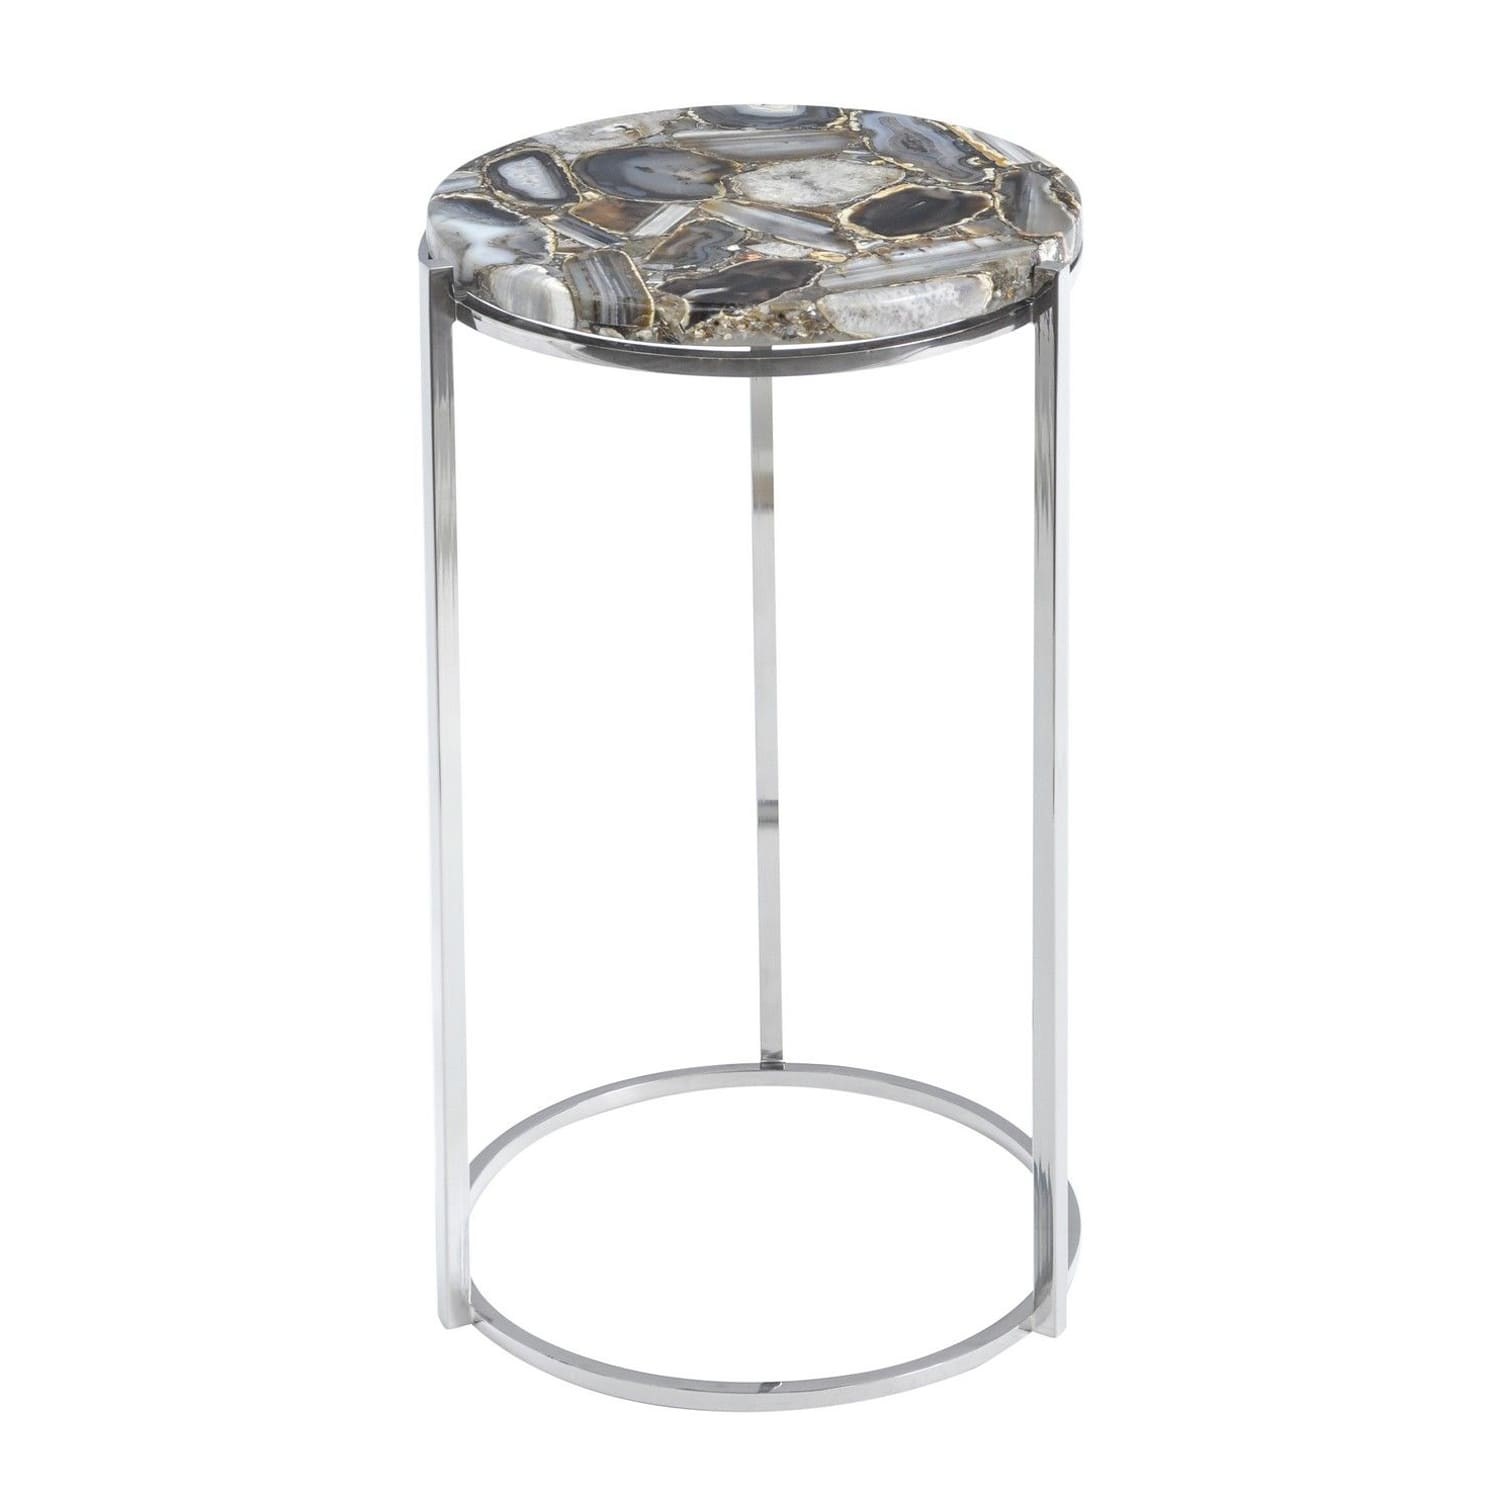 The Libra Company Agate Side Table